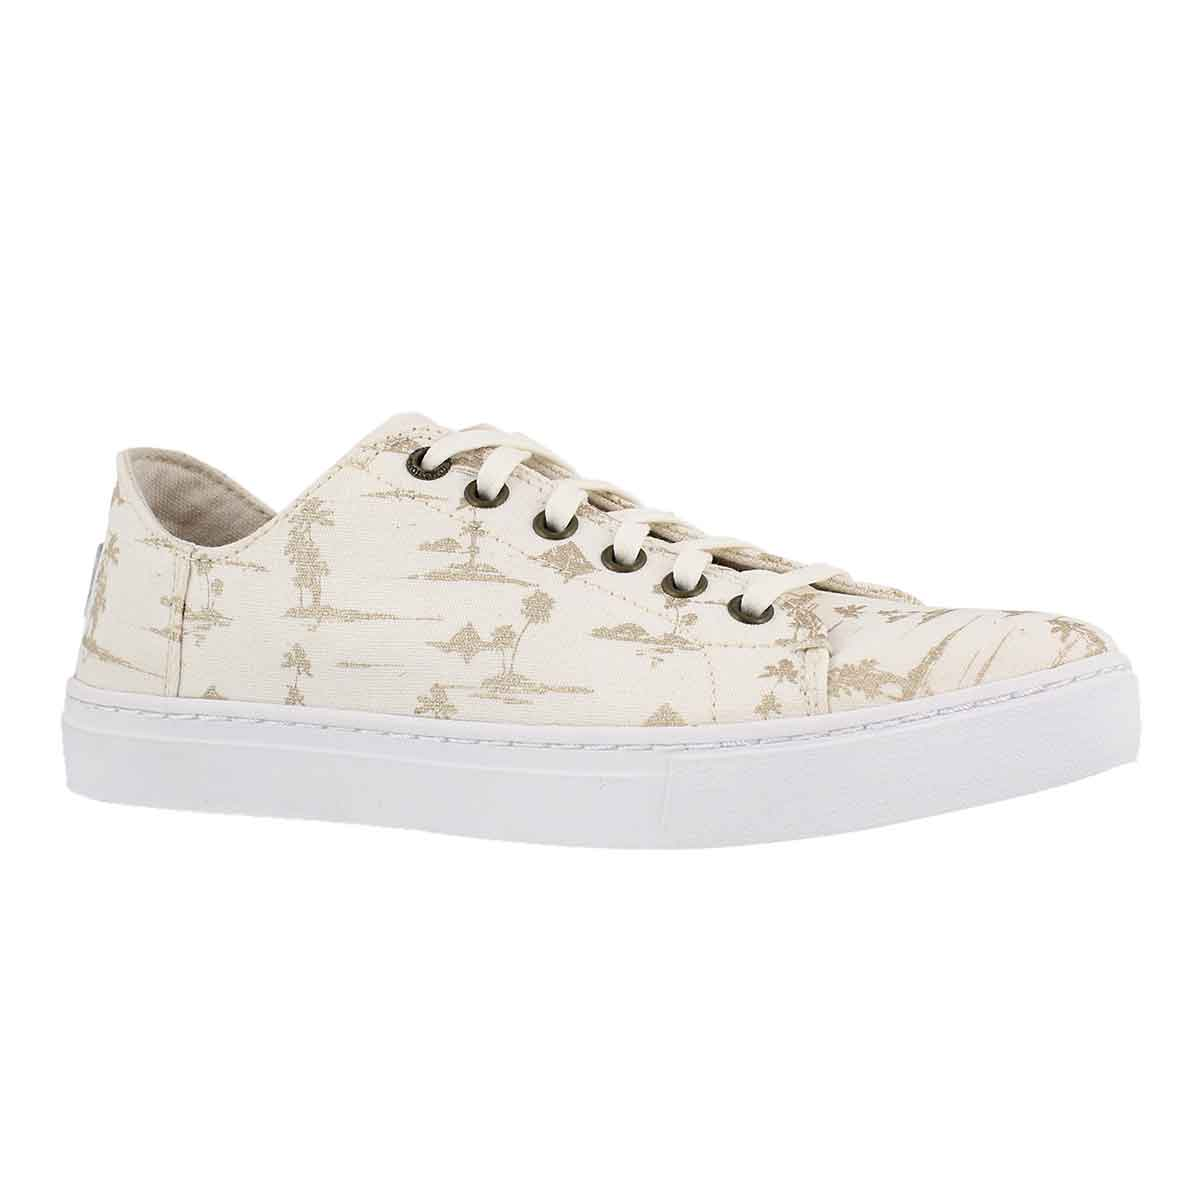 Lds Lenox wht/gld lace up casual sneaker